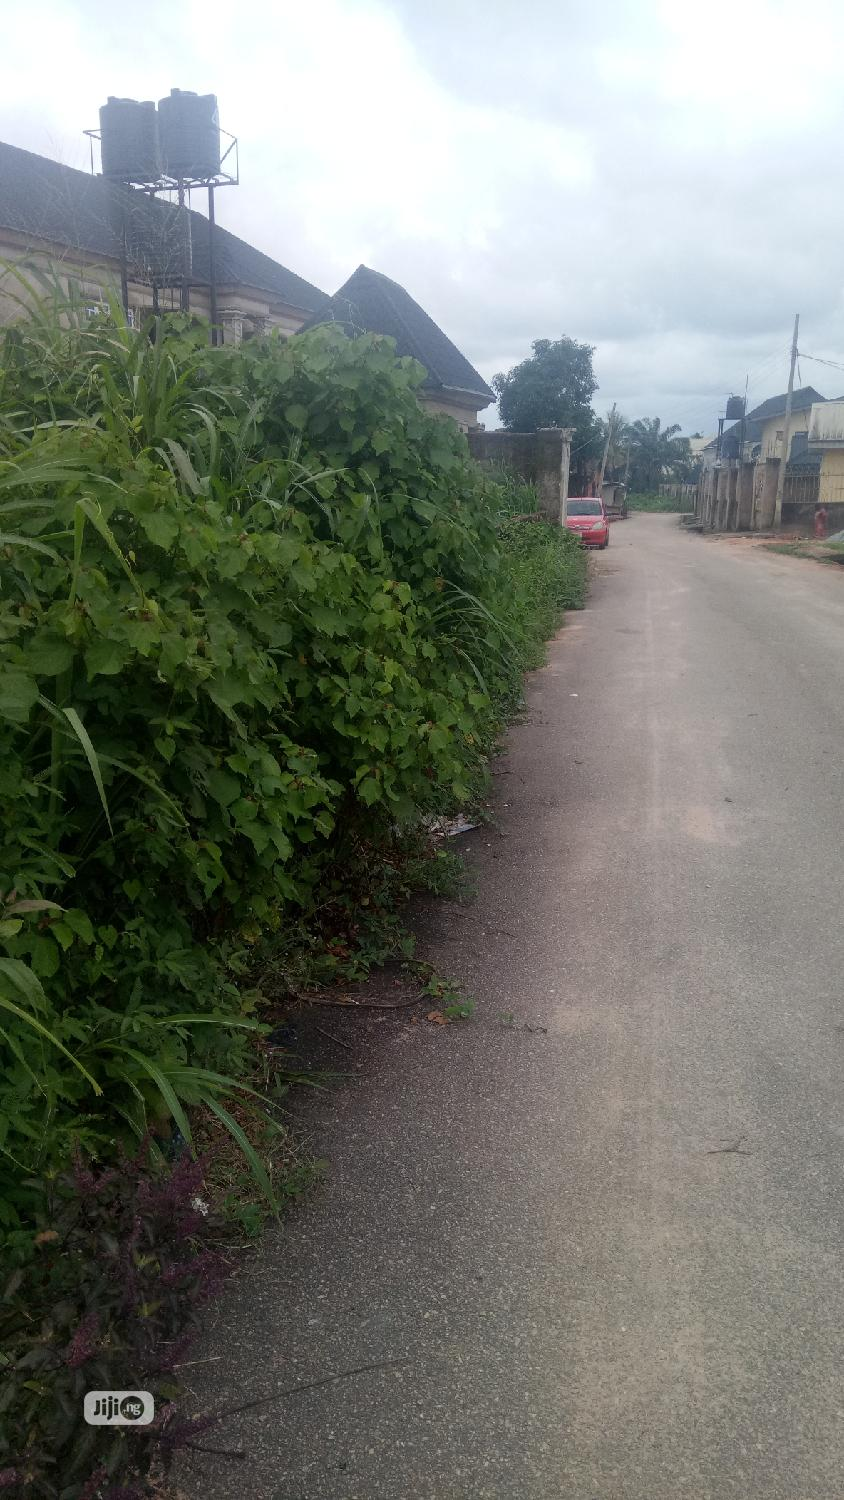 Archive: Genuine Plot of Land Measuring 100X100FT for Sale